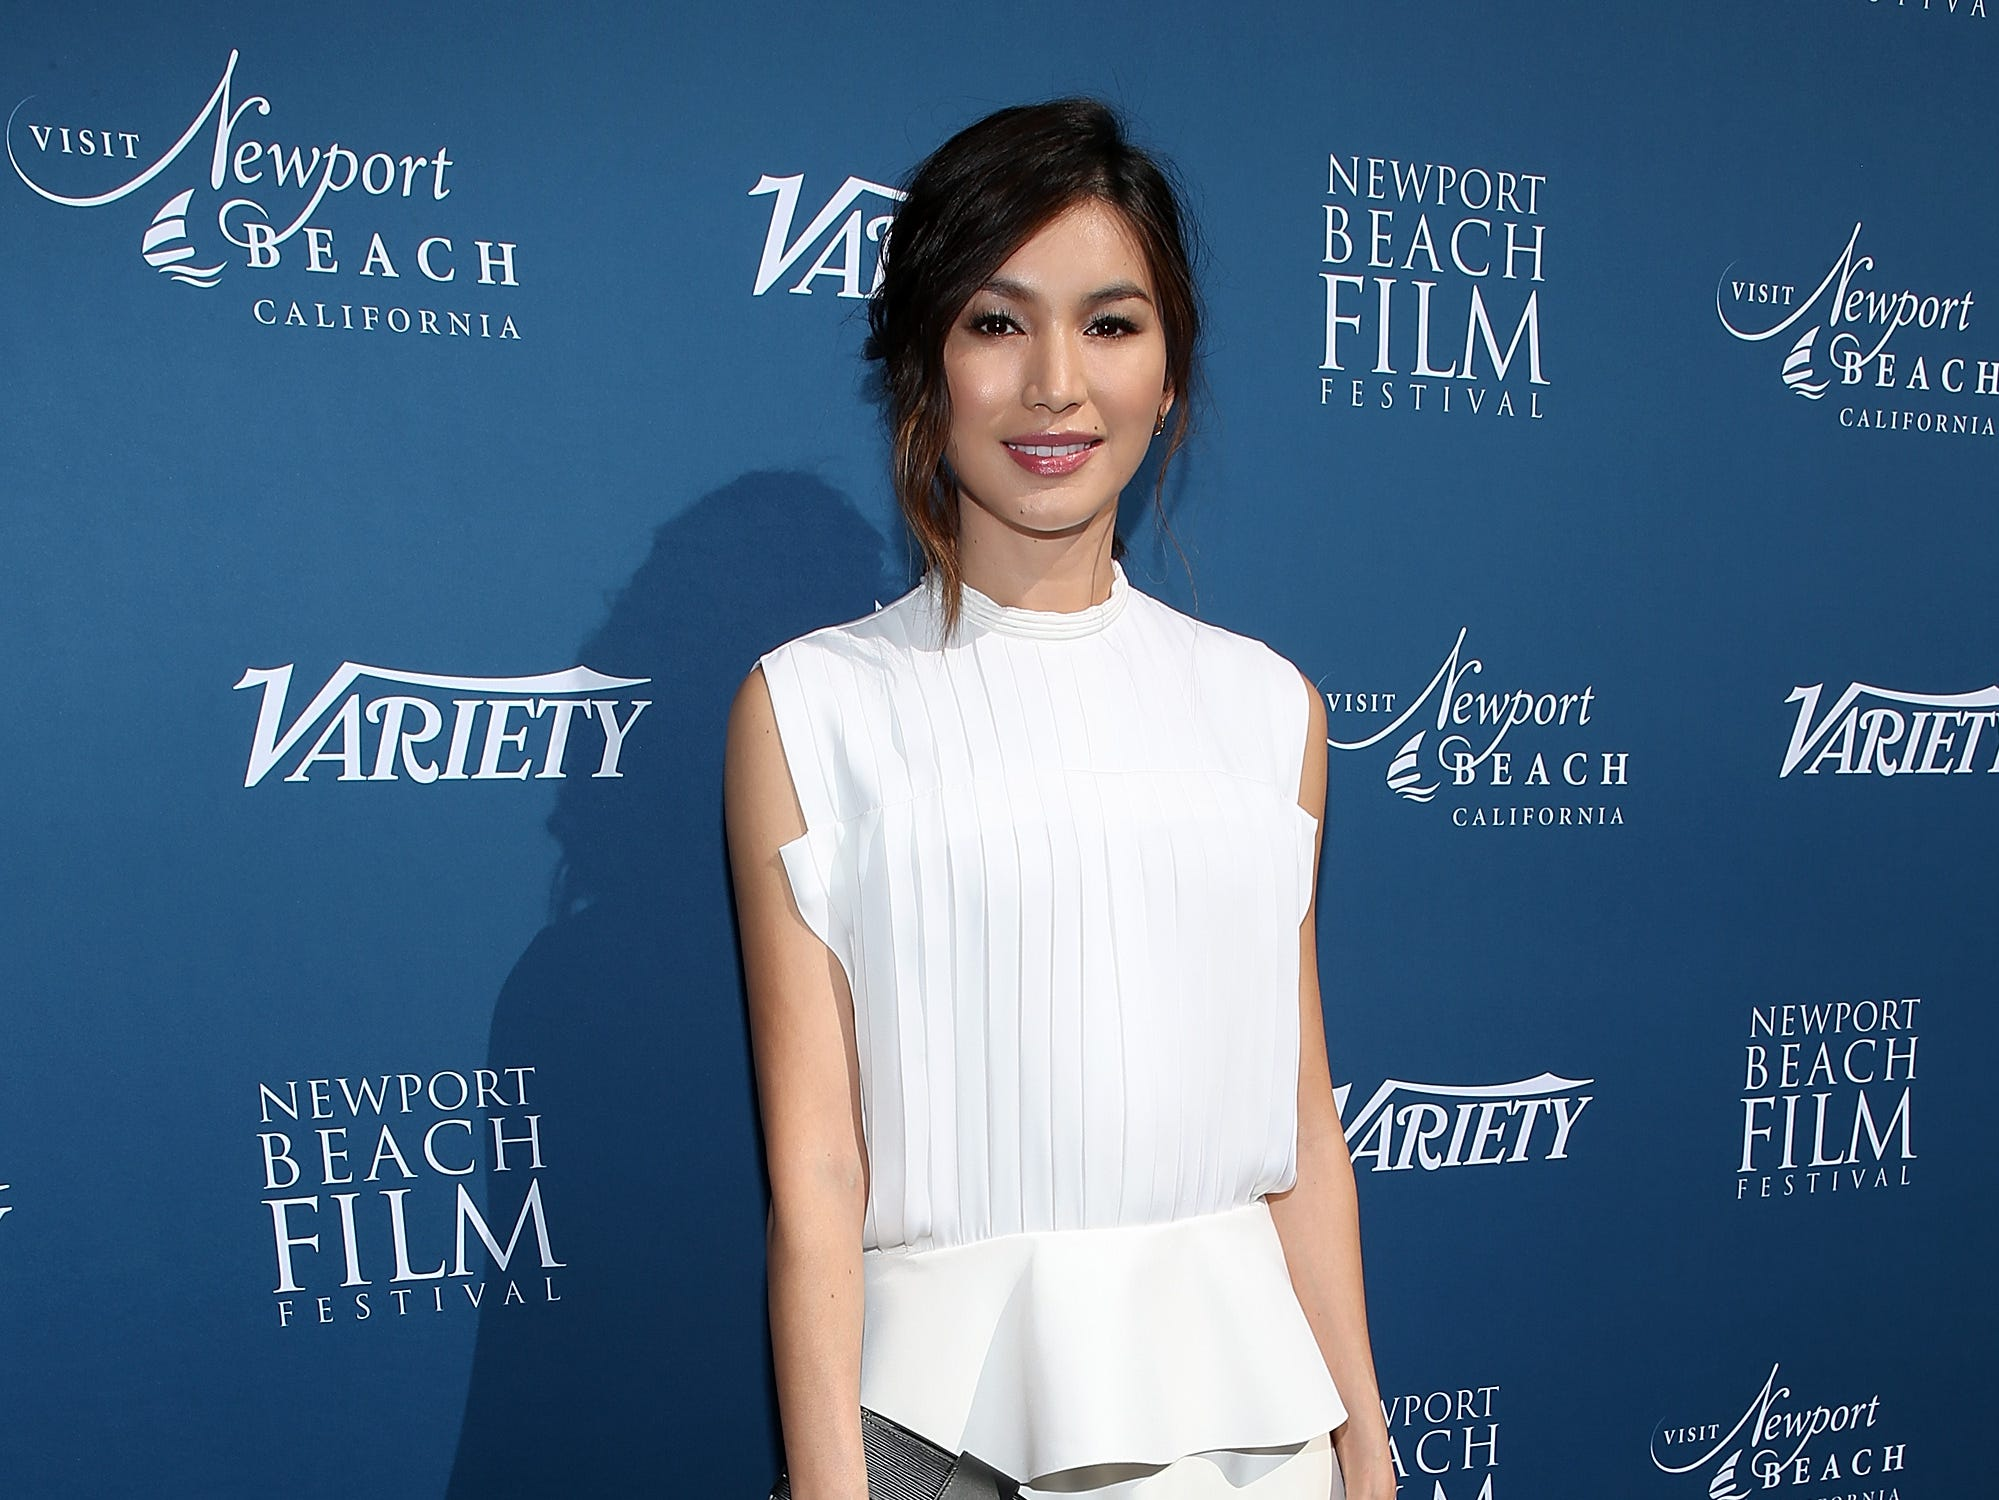 NEWPORT BEACH, CA - NOVEMBER 11:  Gemma Chan attends Variety 10 actors to watch and Newport Beach Film Festival Fall Honors at The Resort at Pelican Hill on November 11, 2018 in Newport Beach, California.  (Photo by Phillip Faraone/Getty Images) ORG XMIT: 775247631 ORIG FILE ID: 1060285764